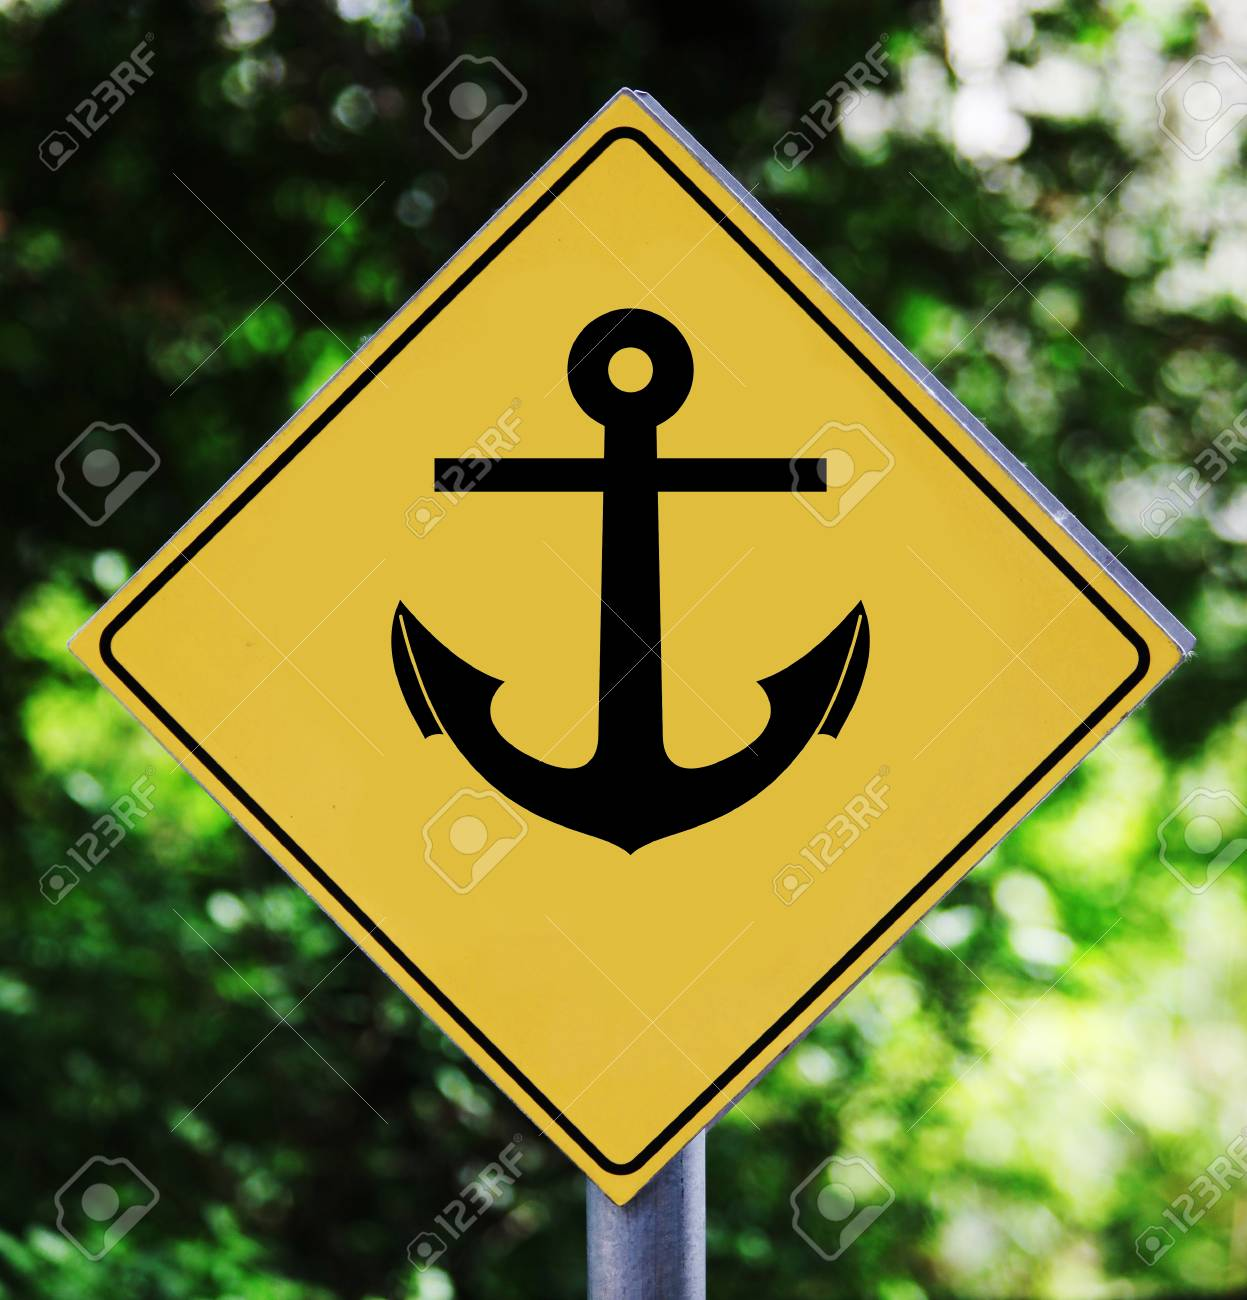 Anchor on label - 44414106